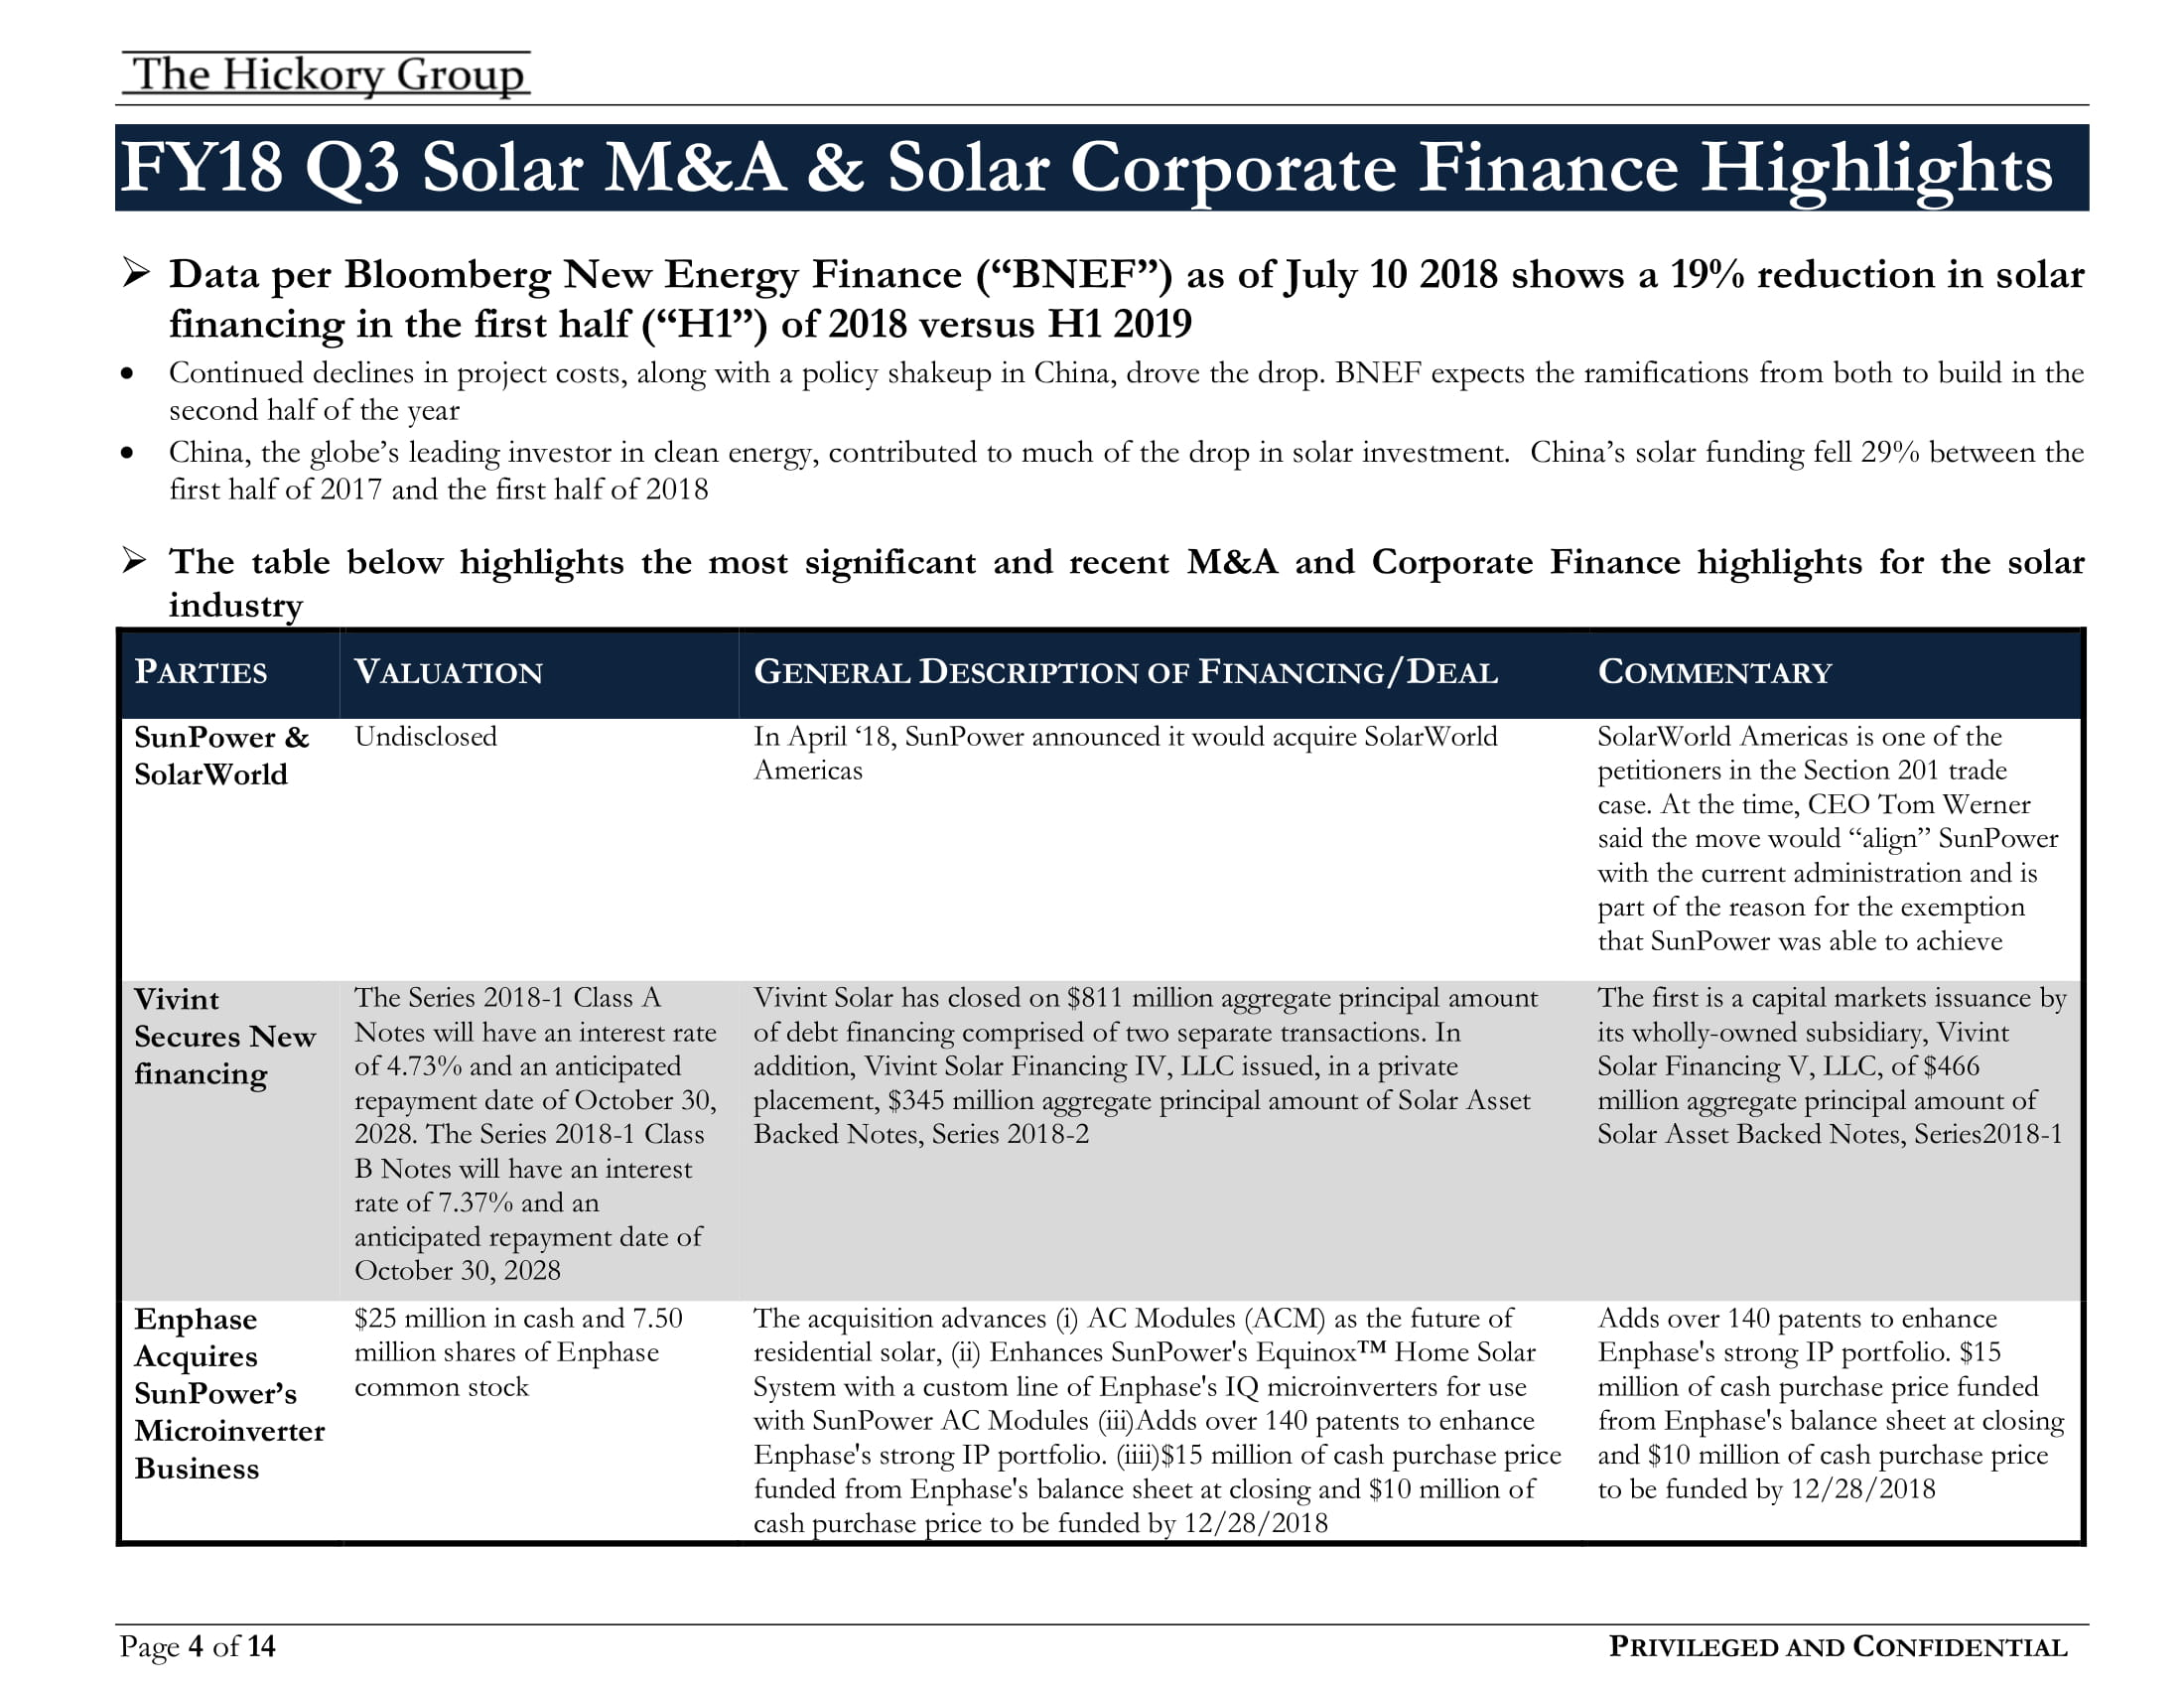 FINAL_THG Solar Flash Report FY18 Q3 (October 2018) Privileged and Confidential[1][1]-04.jpg